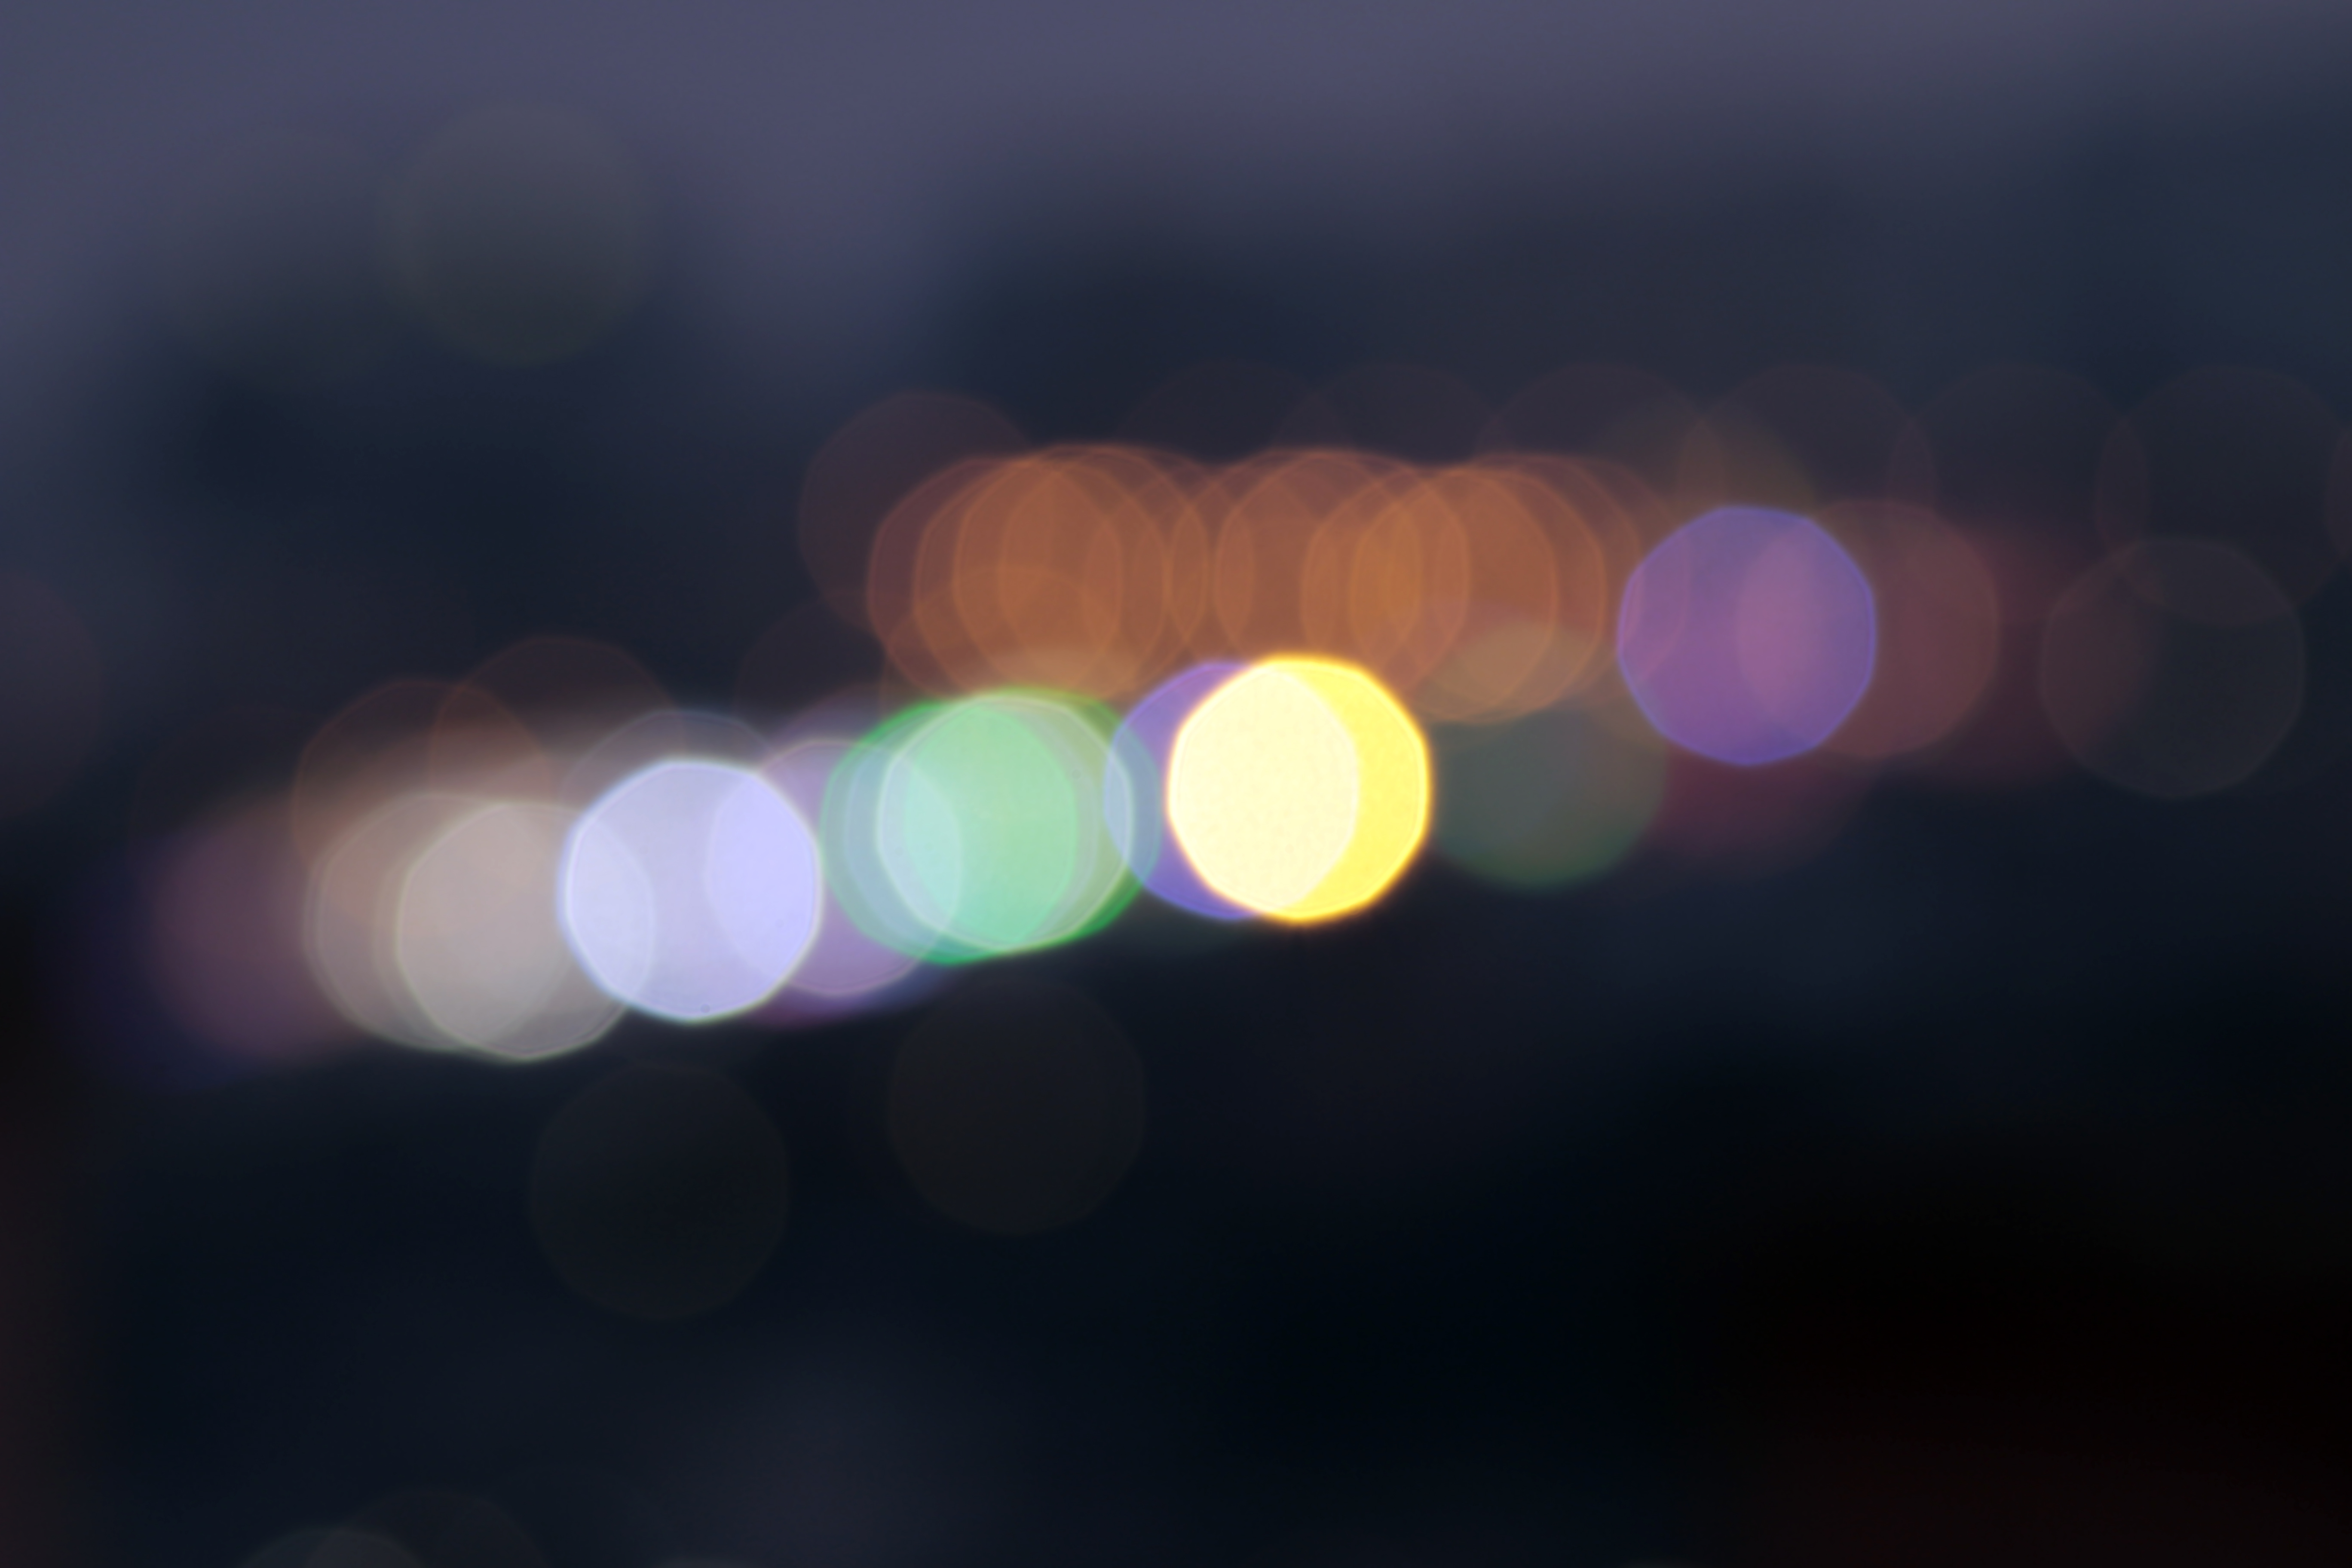 abstract background bokeh images - photo #23